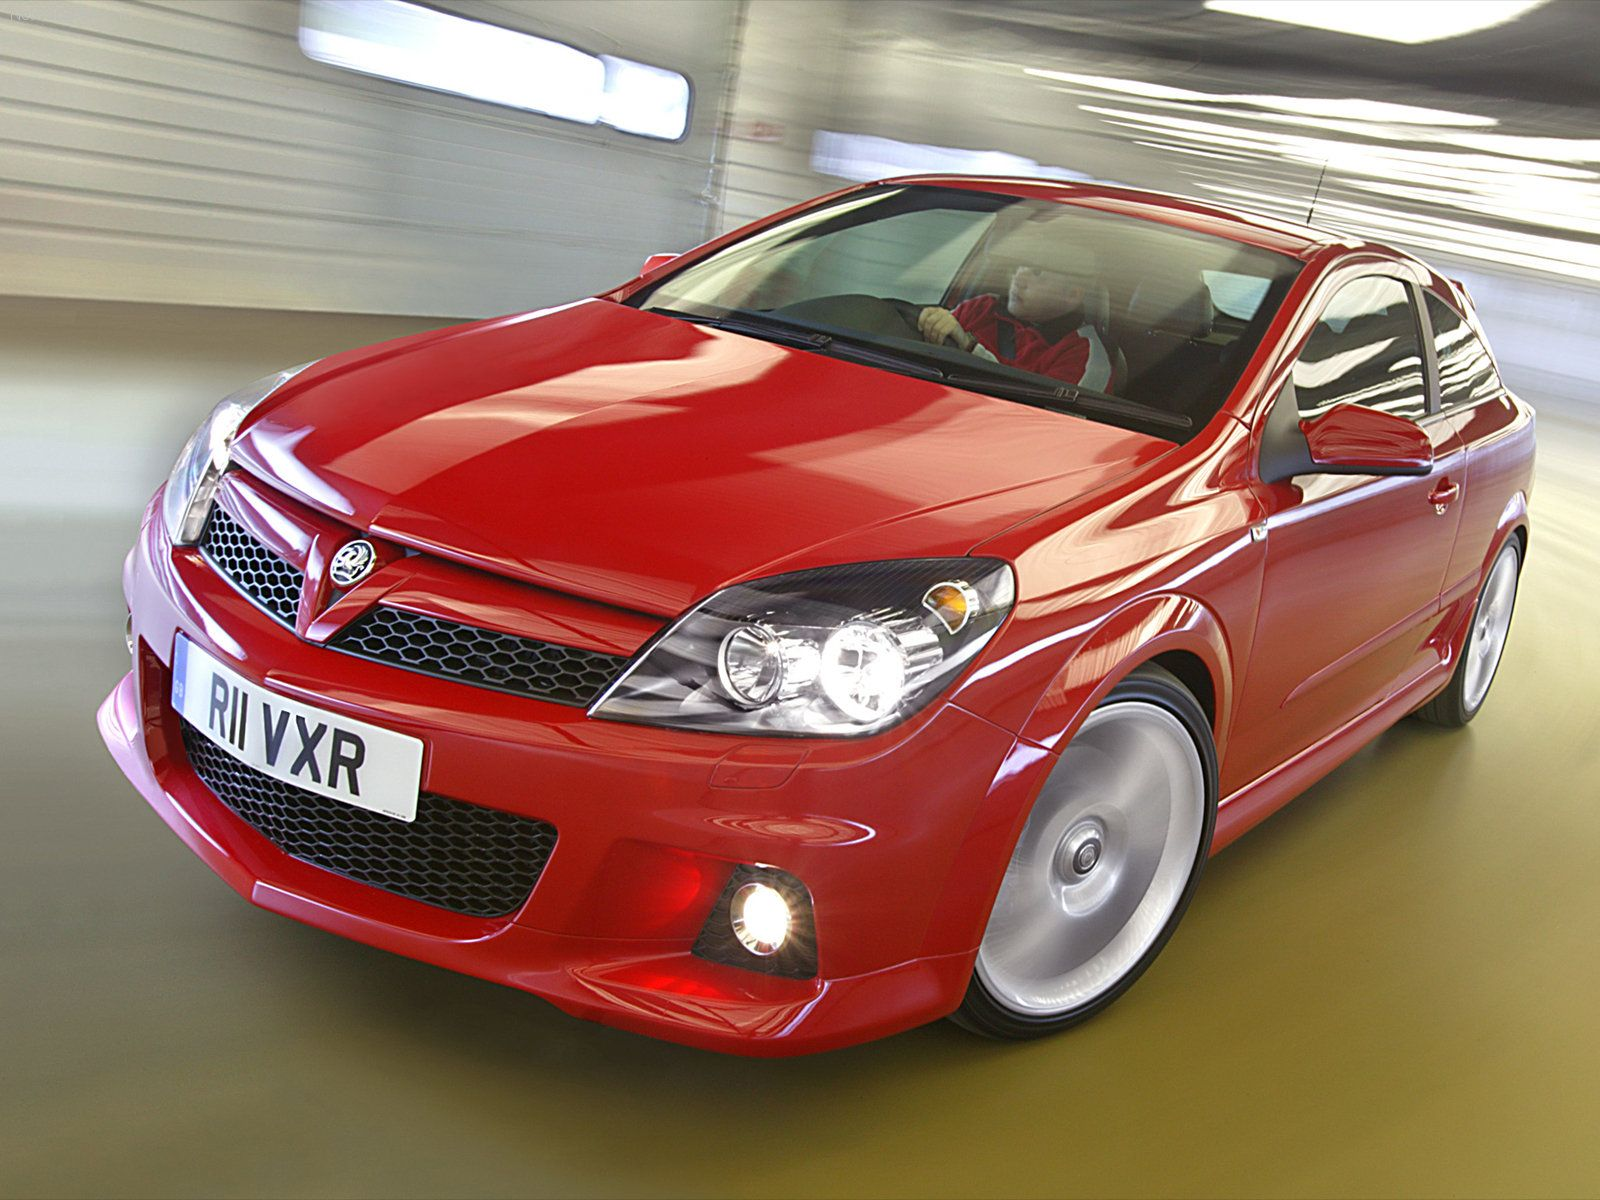 Opel astra h opc 2005 opel astra h opc 2005 photo 06 car in - Red Vauxhall Astra Vxr Wallpapers